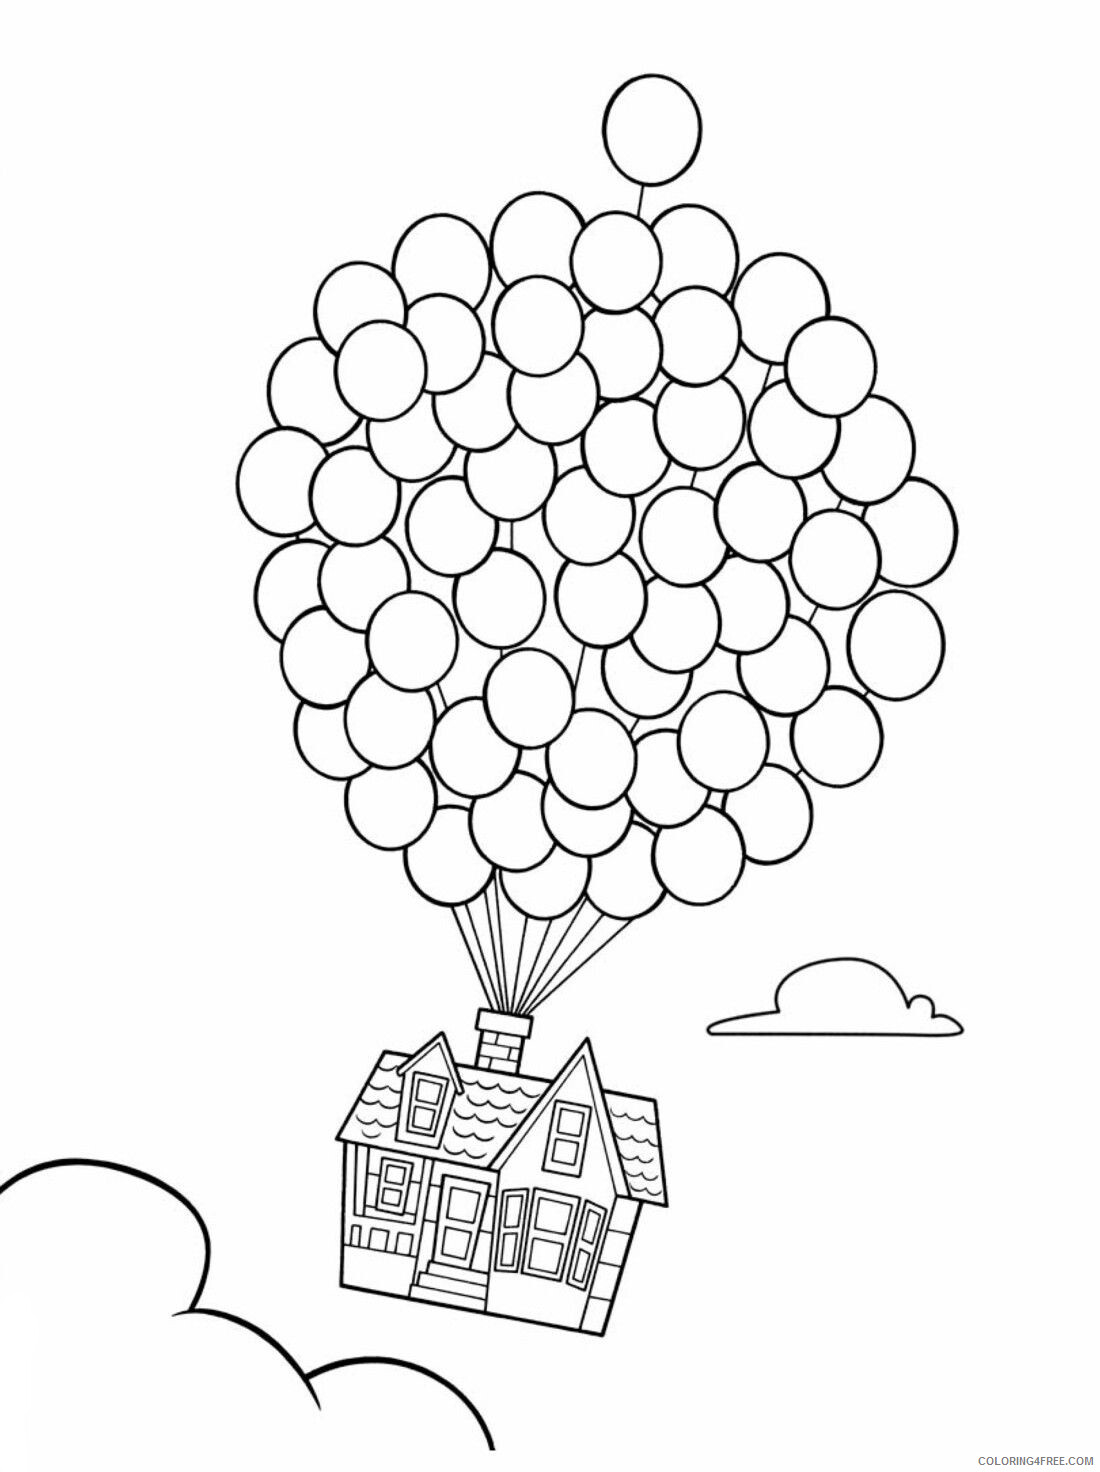 Balloons Coloring Pages for Kids Up House and Balloons Printable 2021 043 Coloring4free